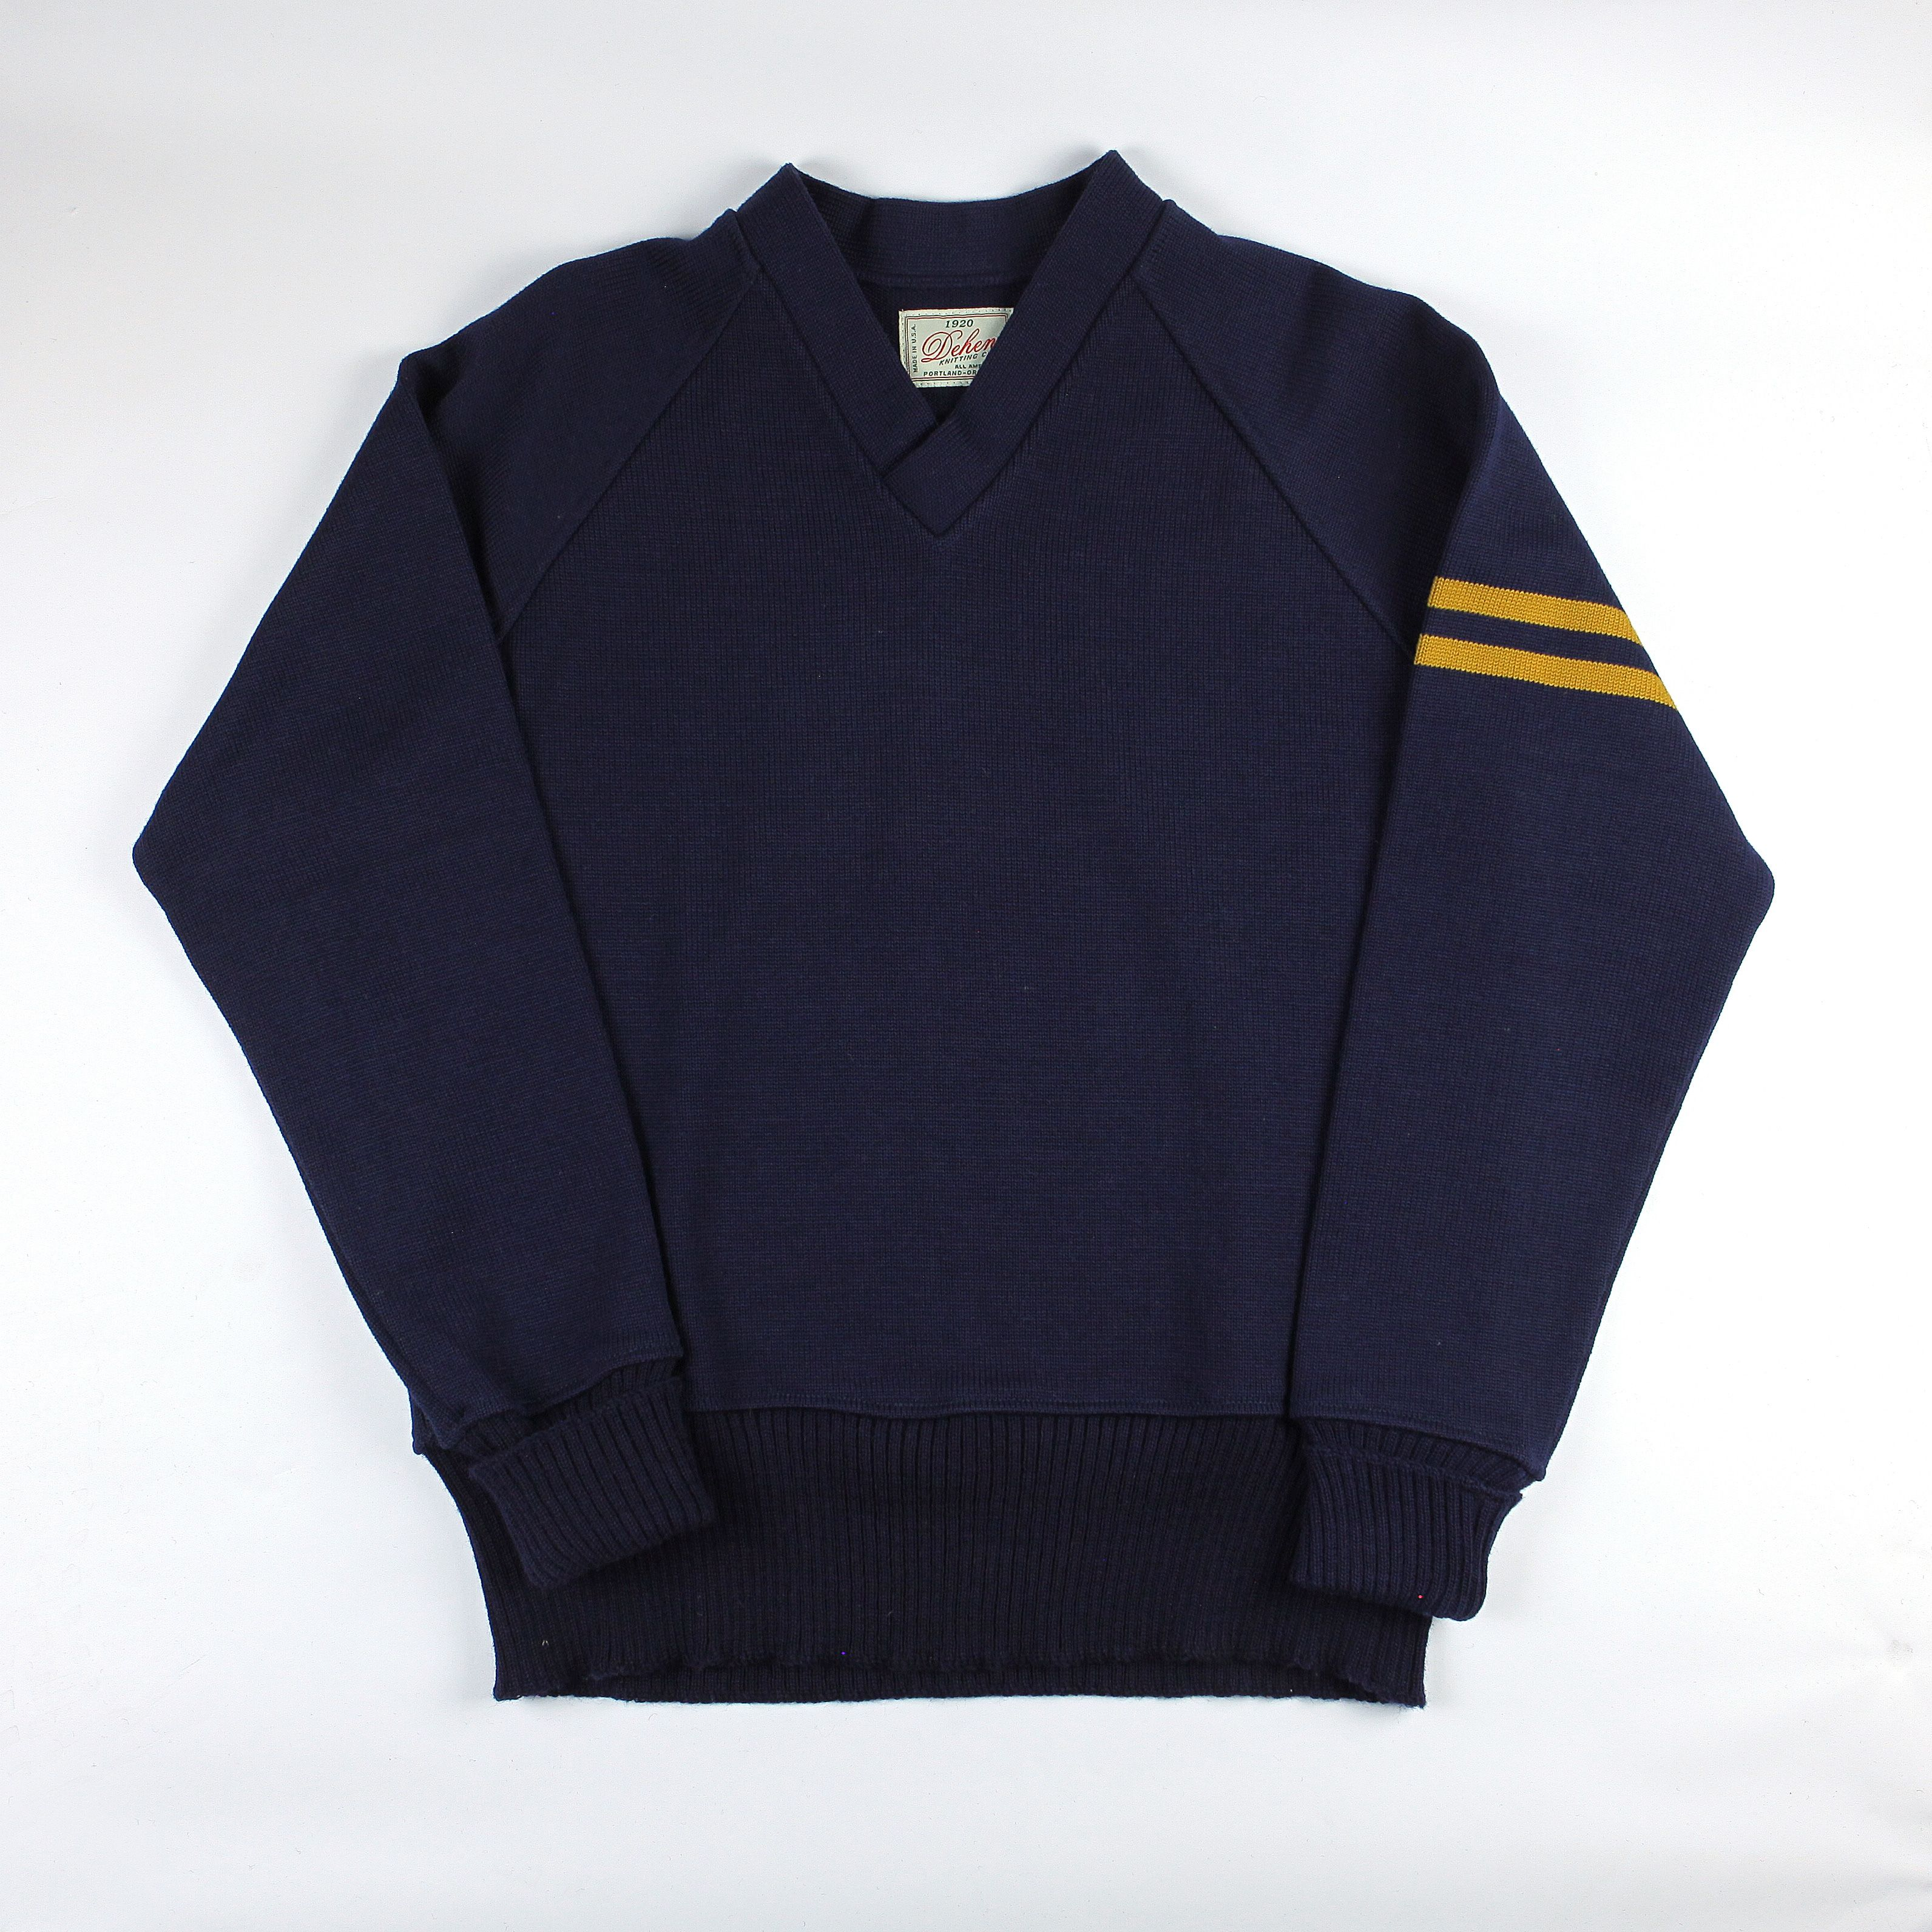 Dehen 1920 Varsity V-Neck (Navy/Old Gold) | Sweaters | Pinterest